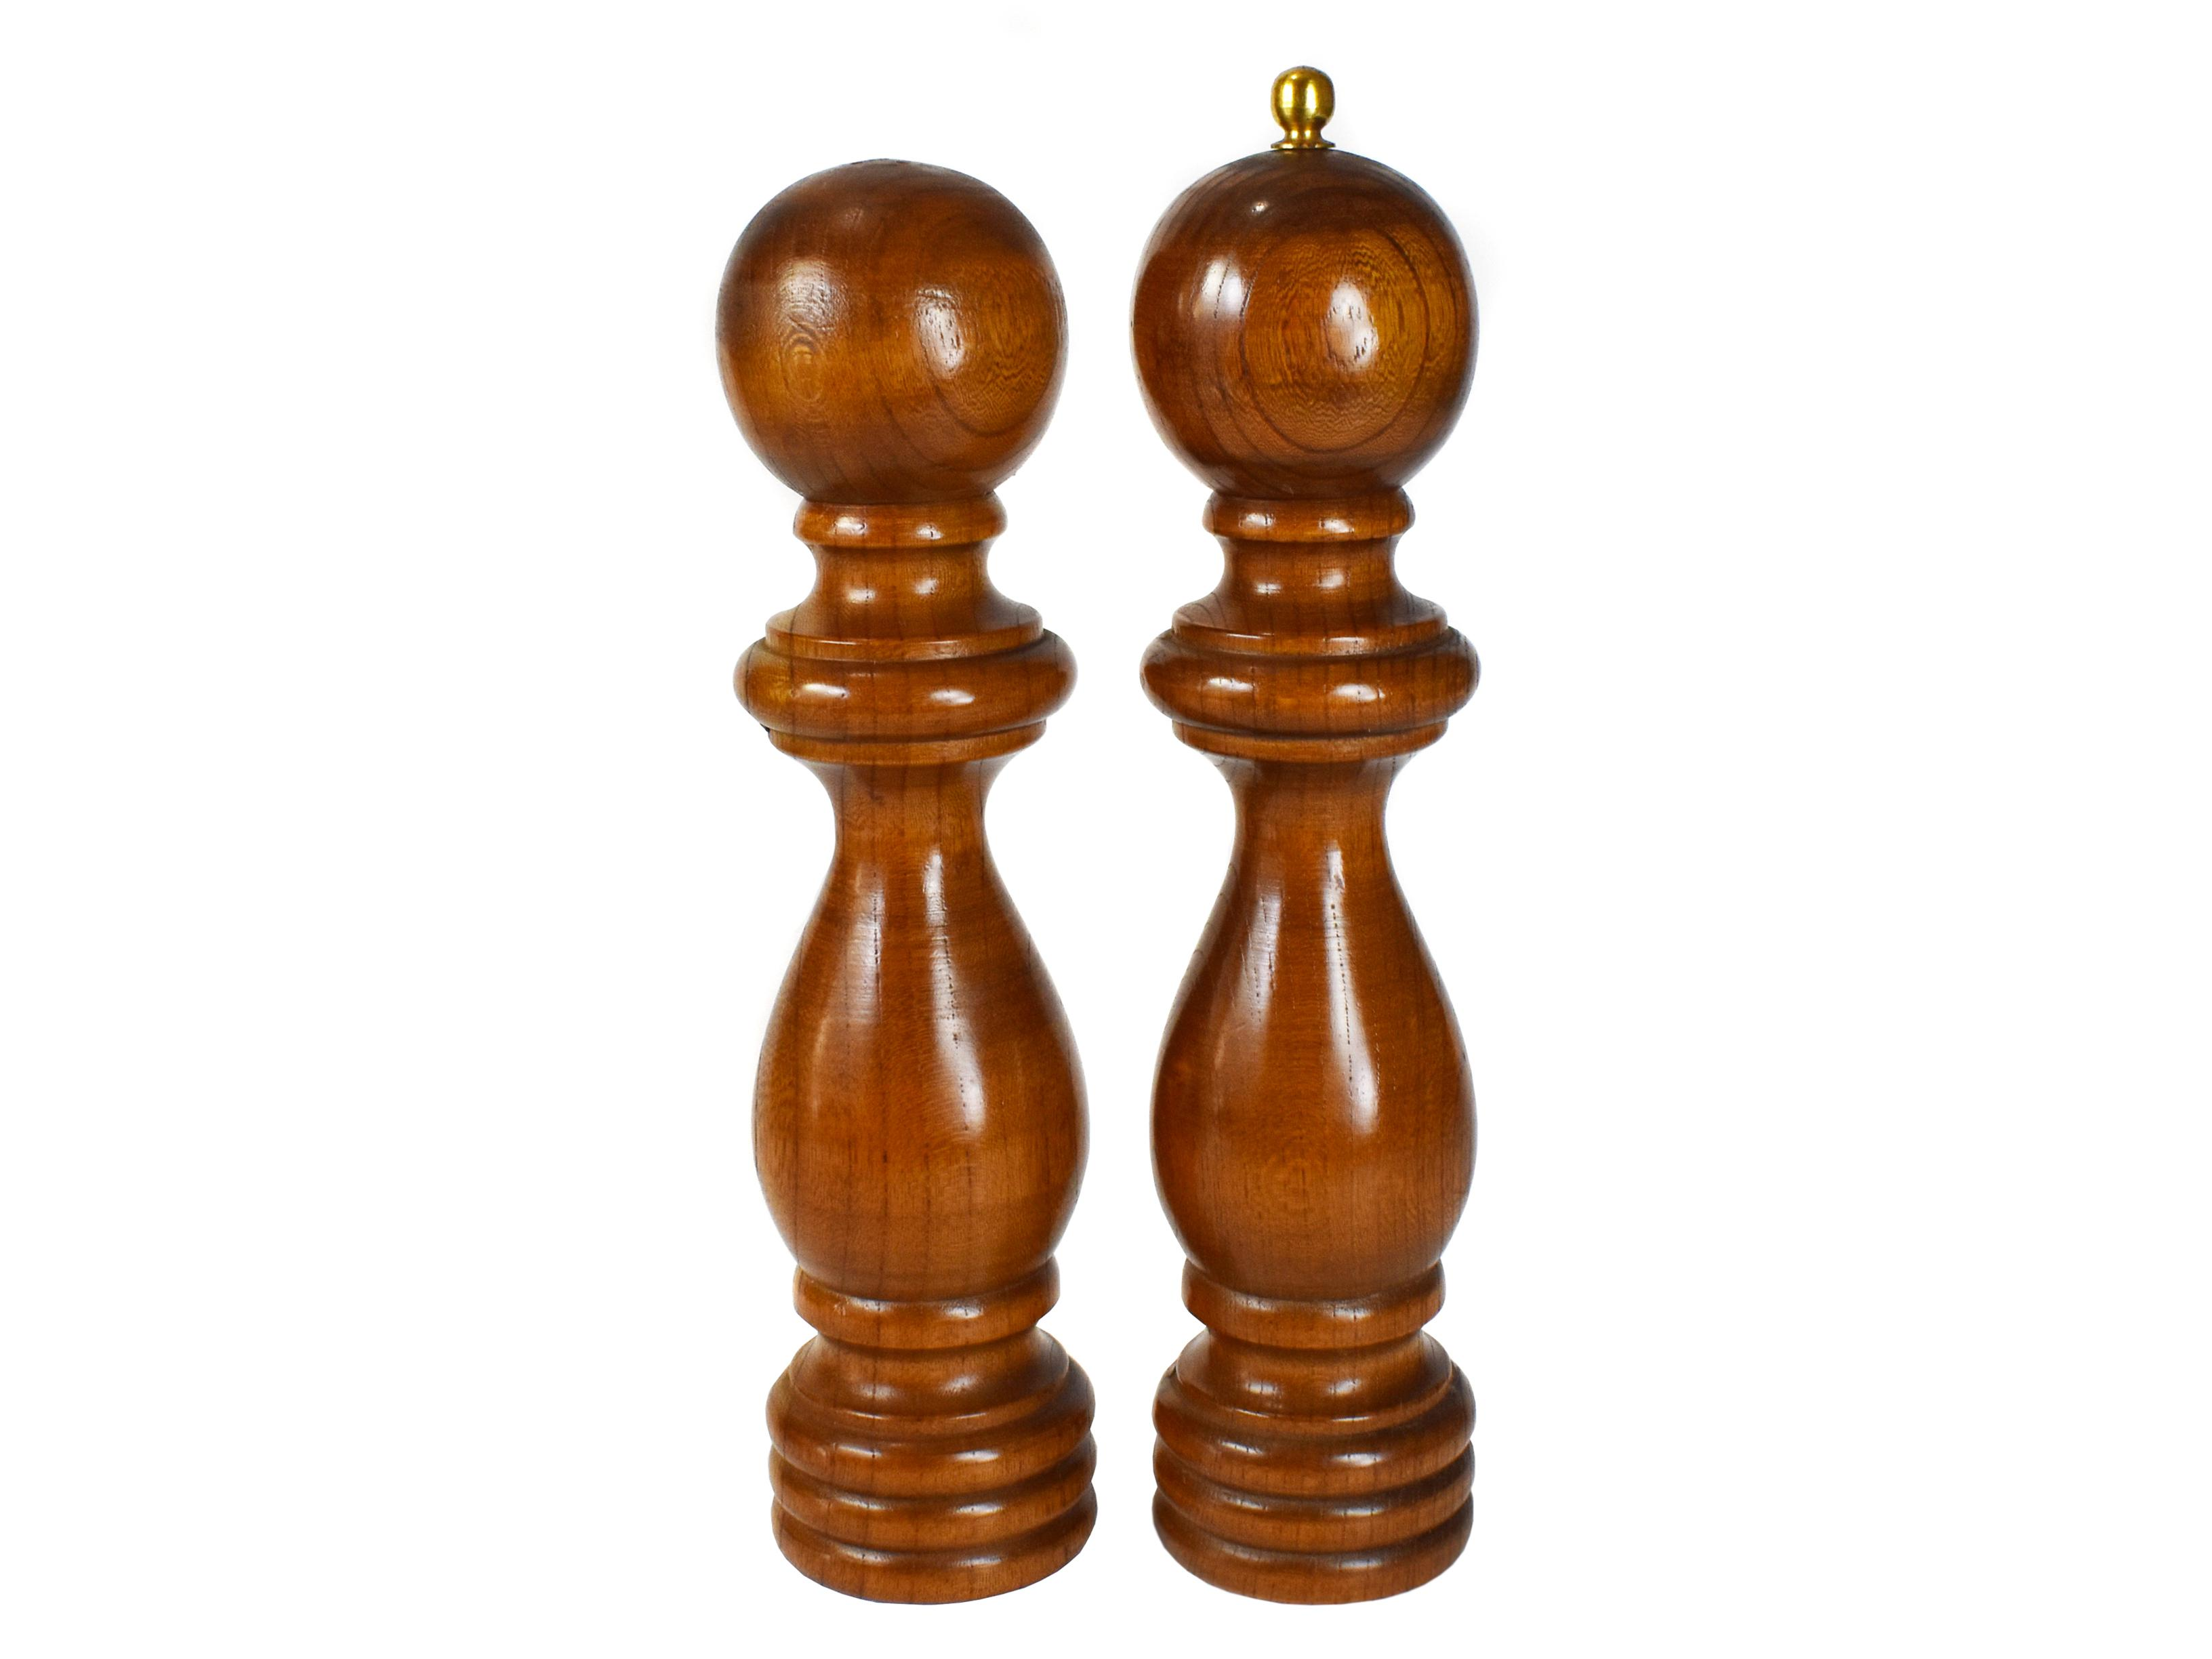 Large Wooden Salt And Pepper Mills Cheaper Than Retail Price Buy Clothing Accessories And Lifestyle Products For Women Men